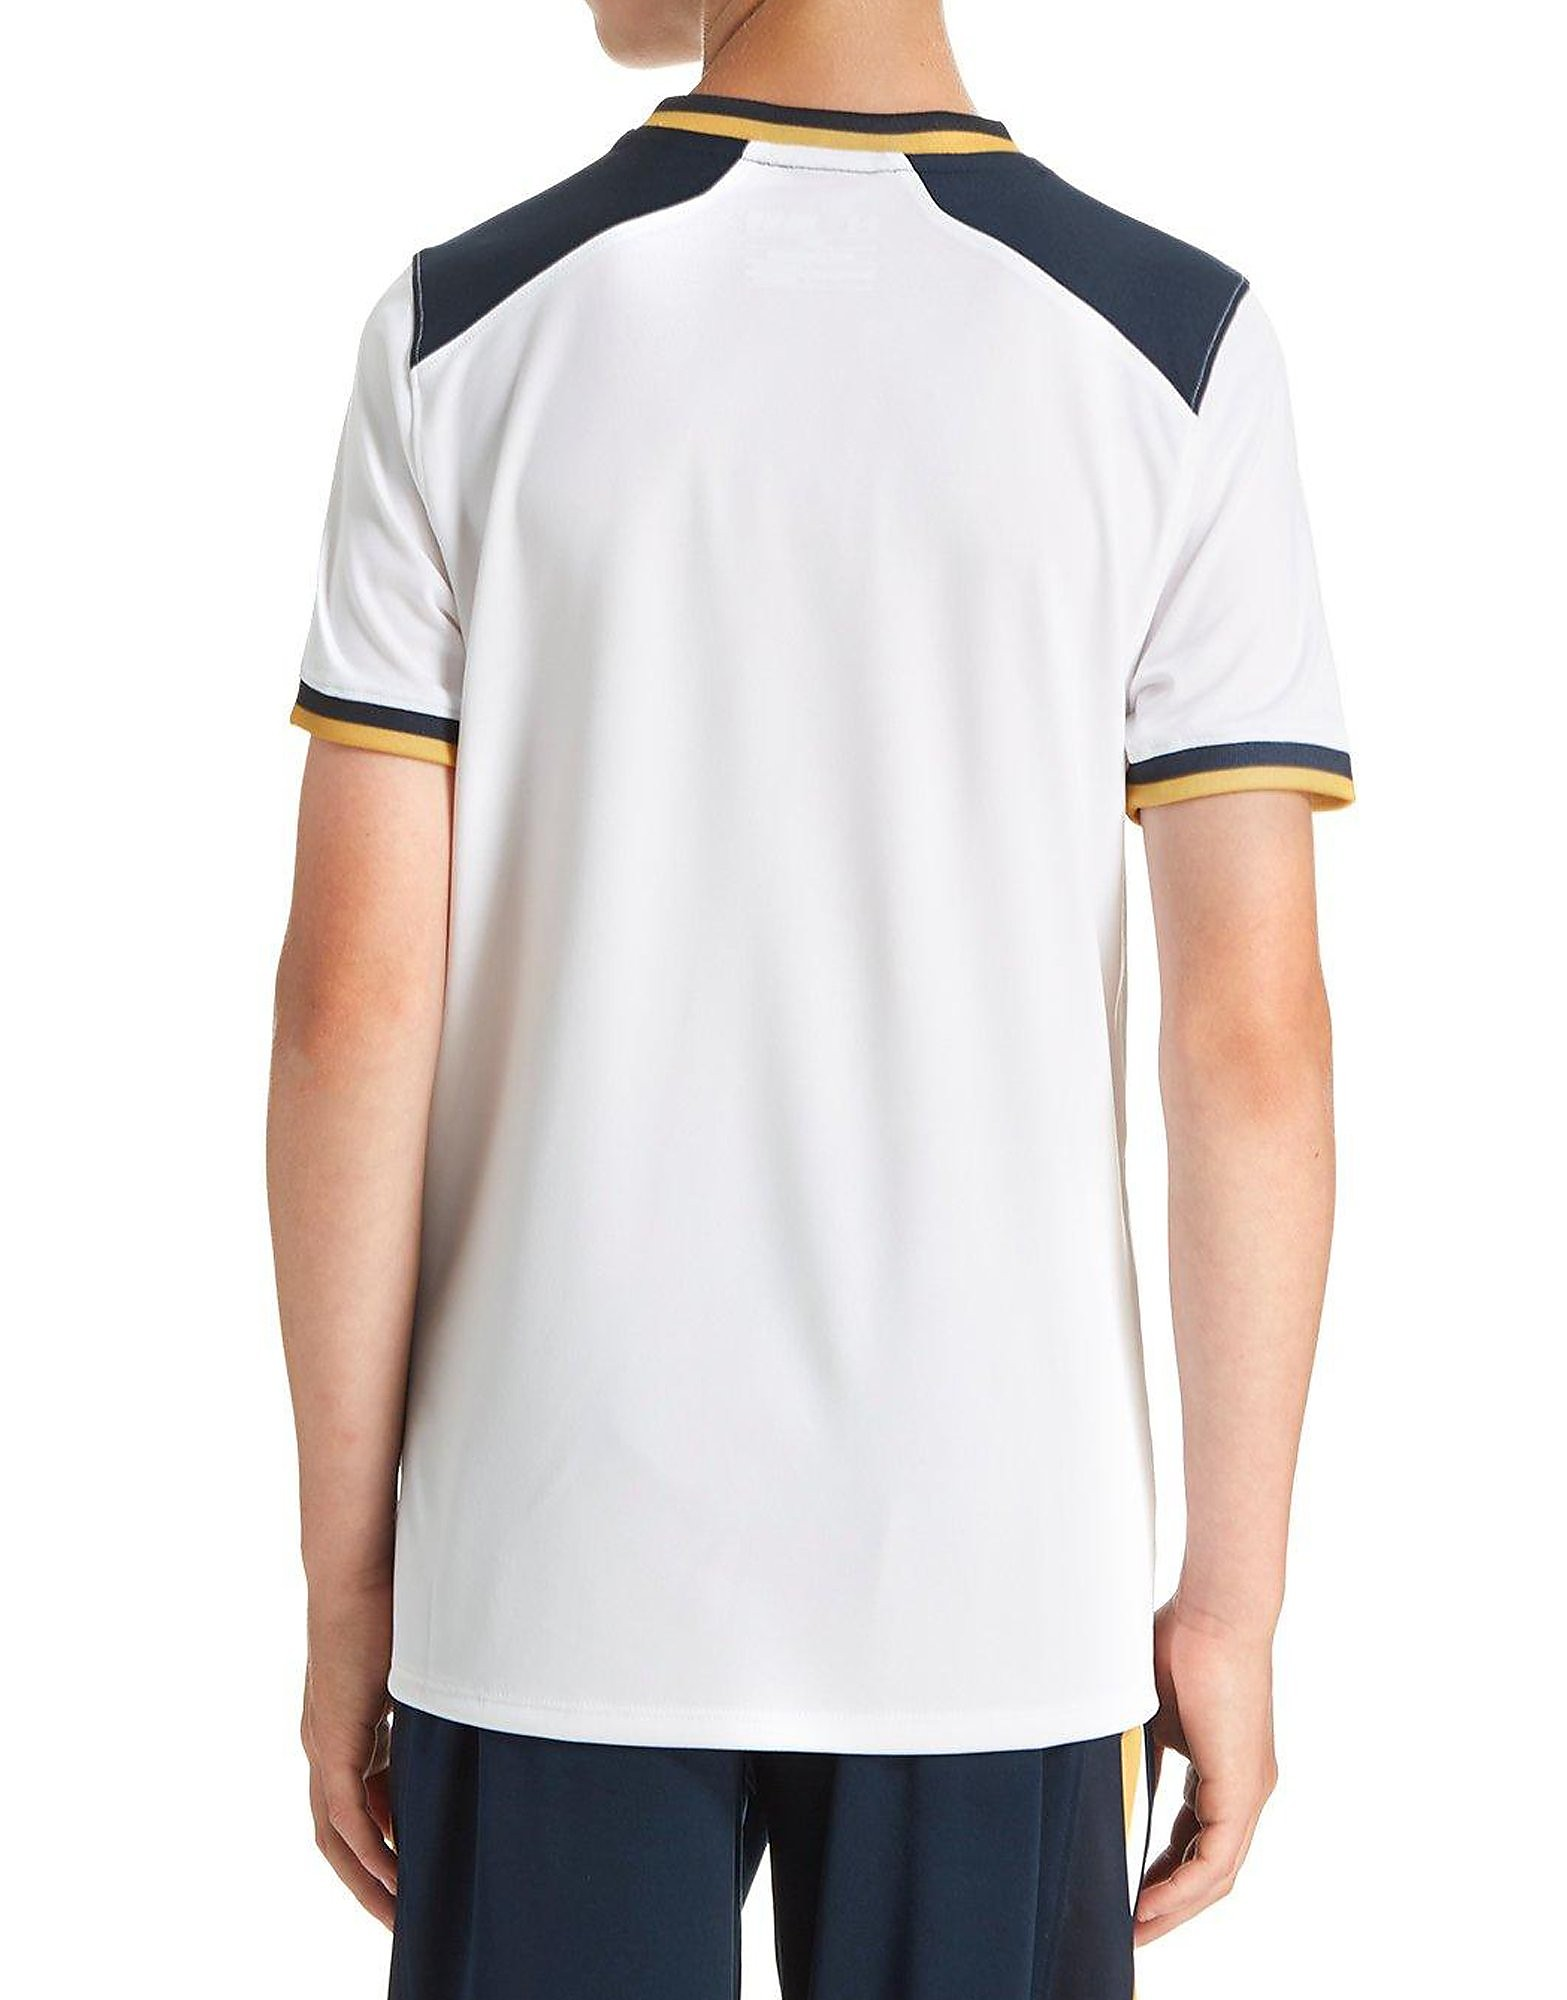 Under Armour Tottenham Hotspur FC 2016/17 Heimtrikot Junior